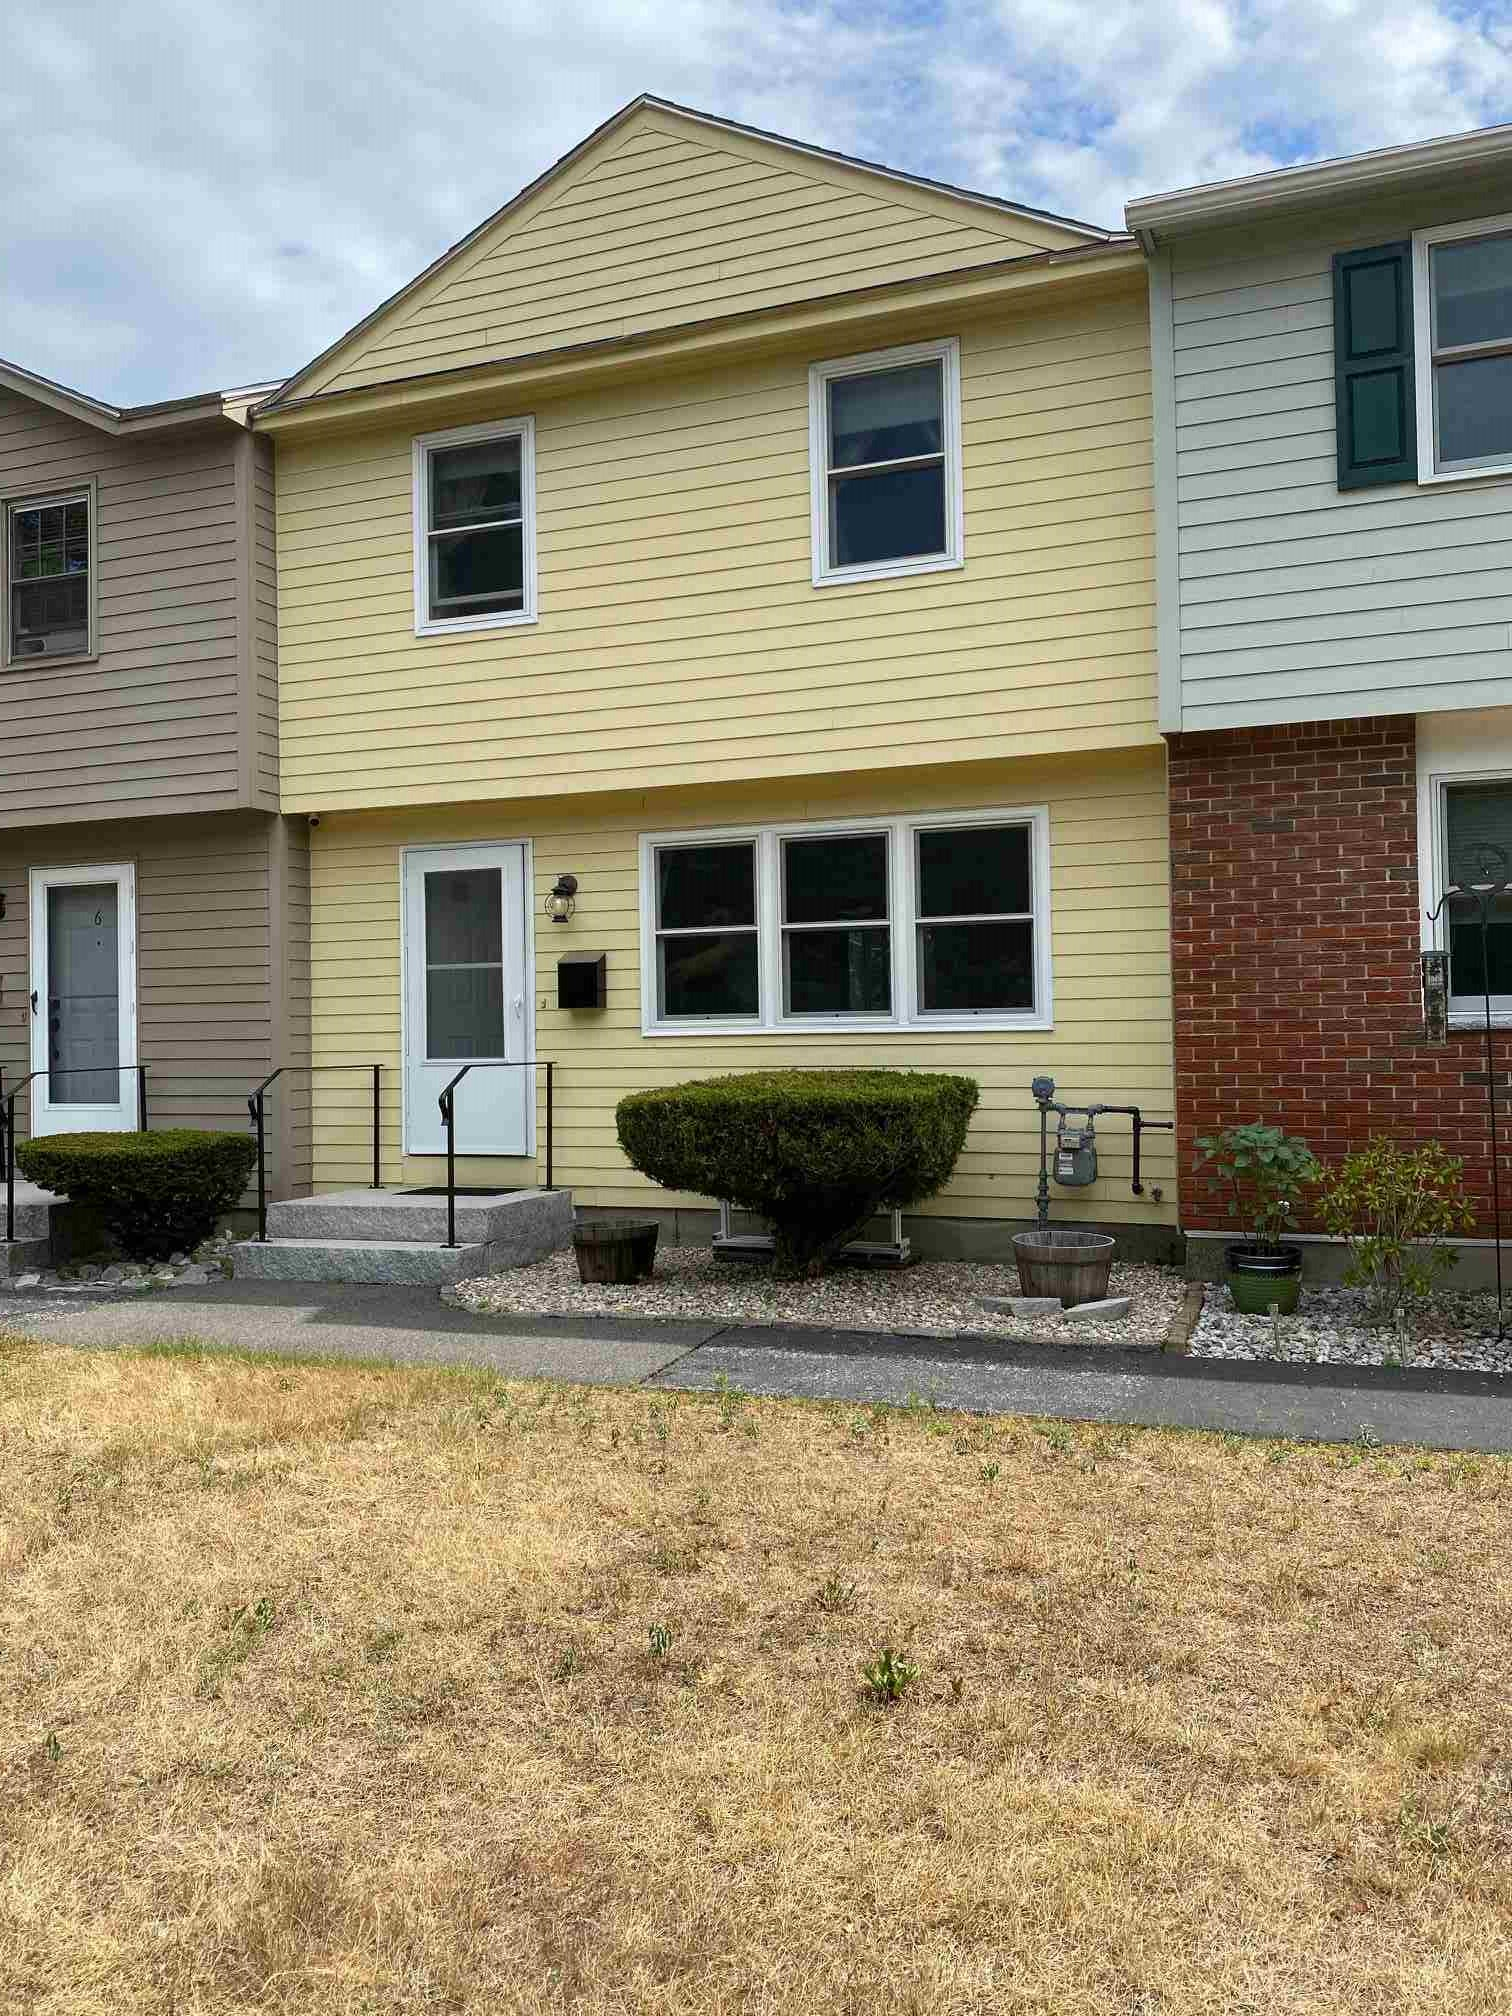 MLS 4813430: 494 Nashua Street-Unit 7, Milford NH